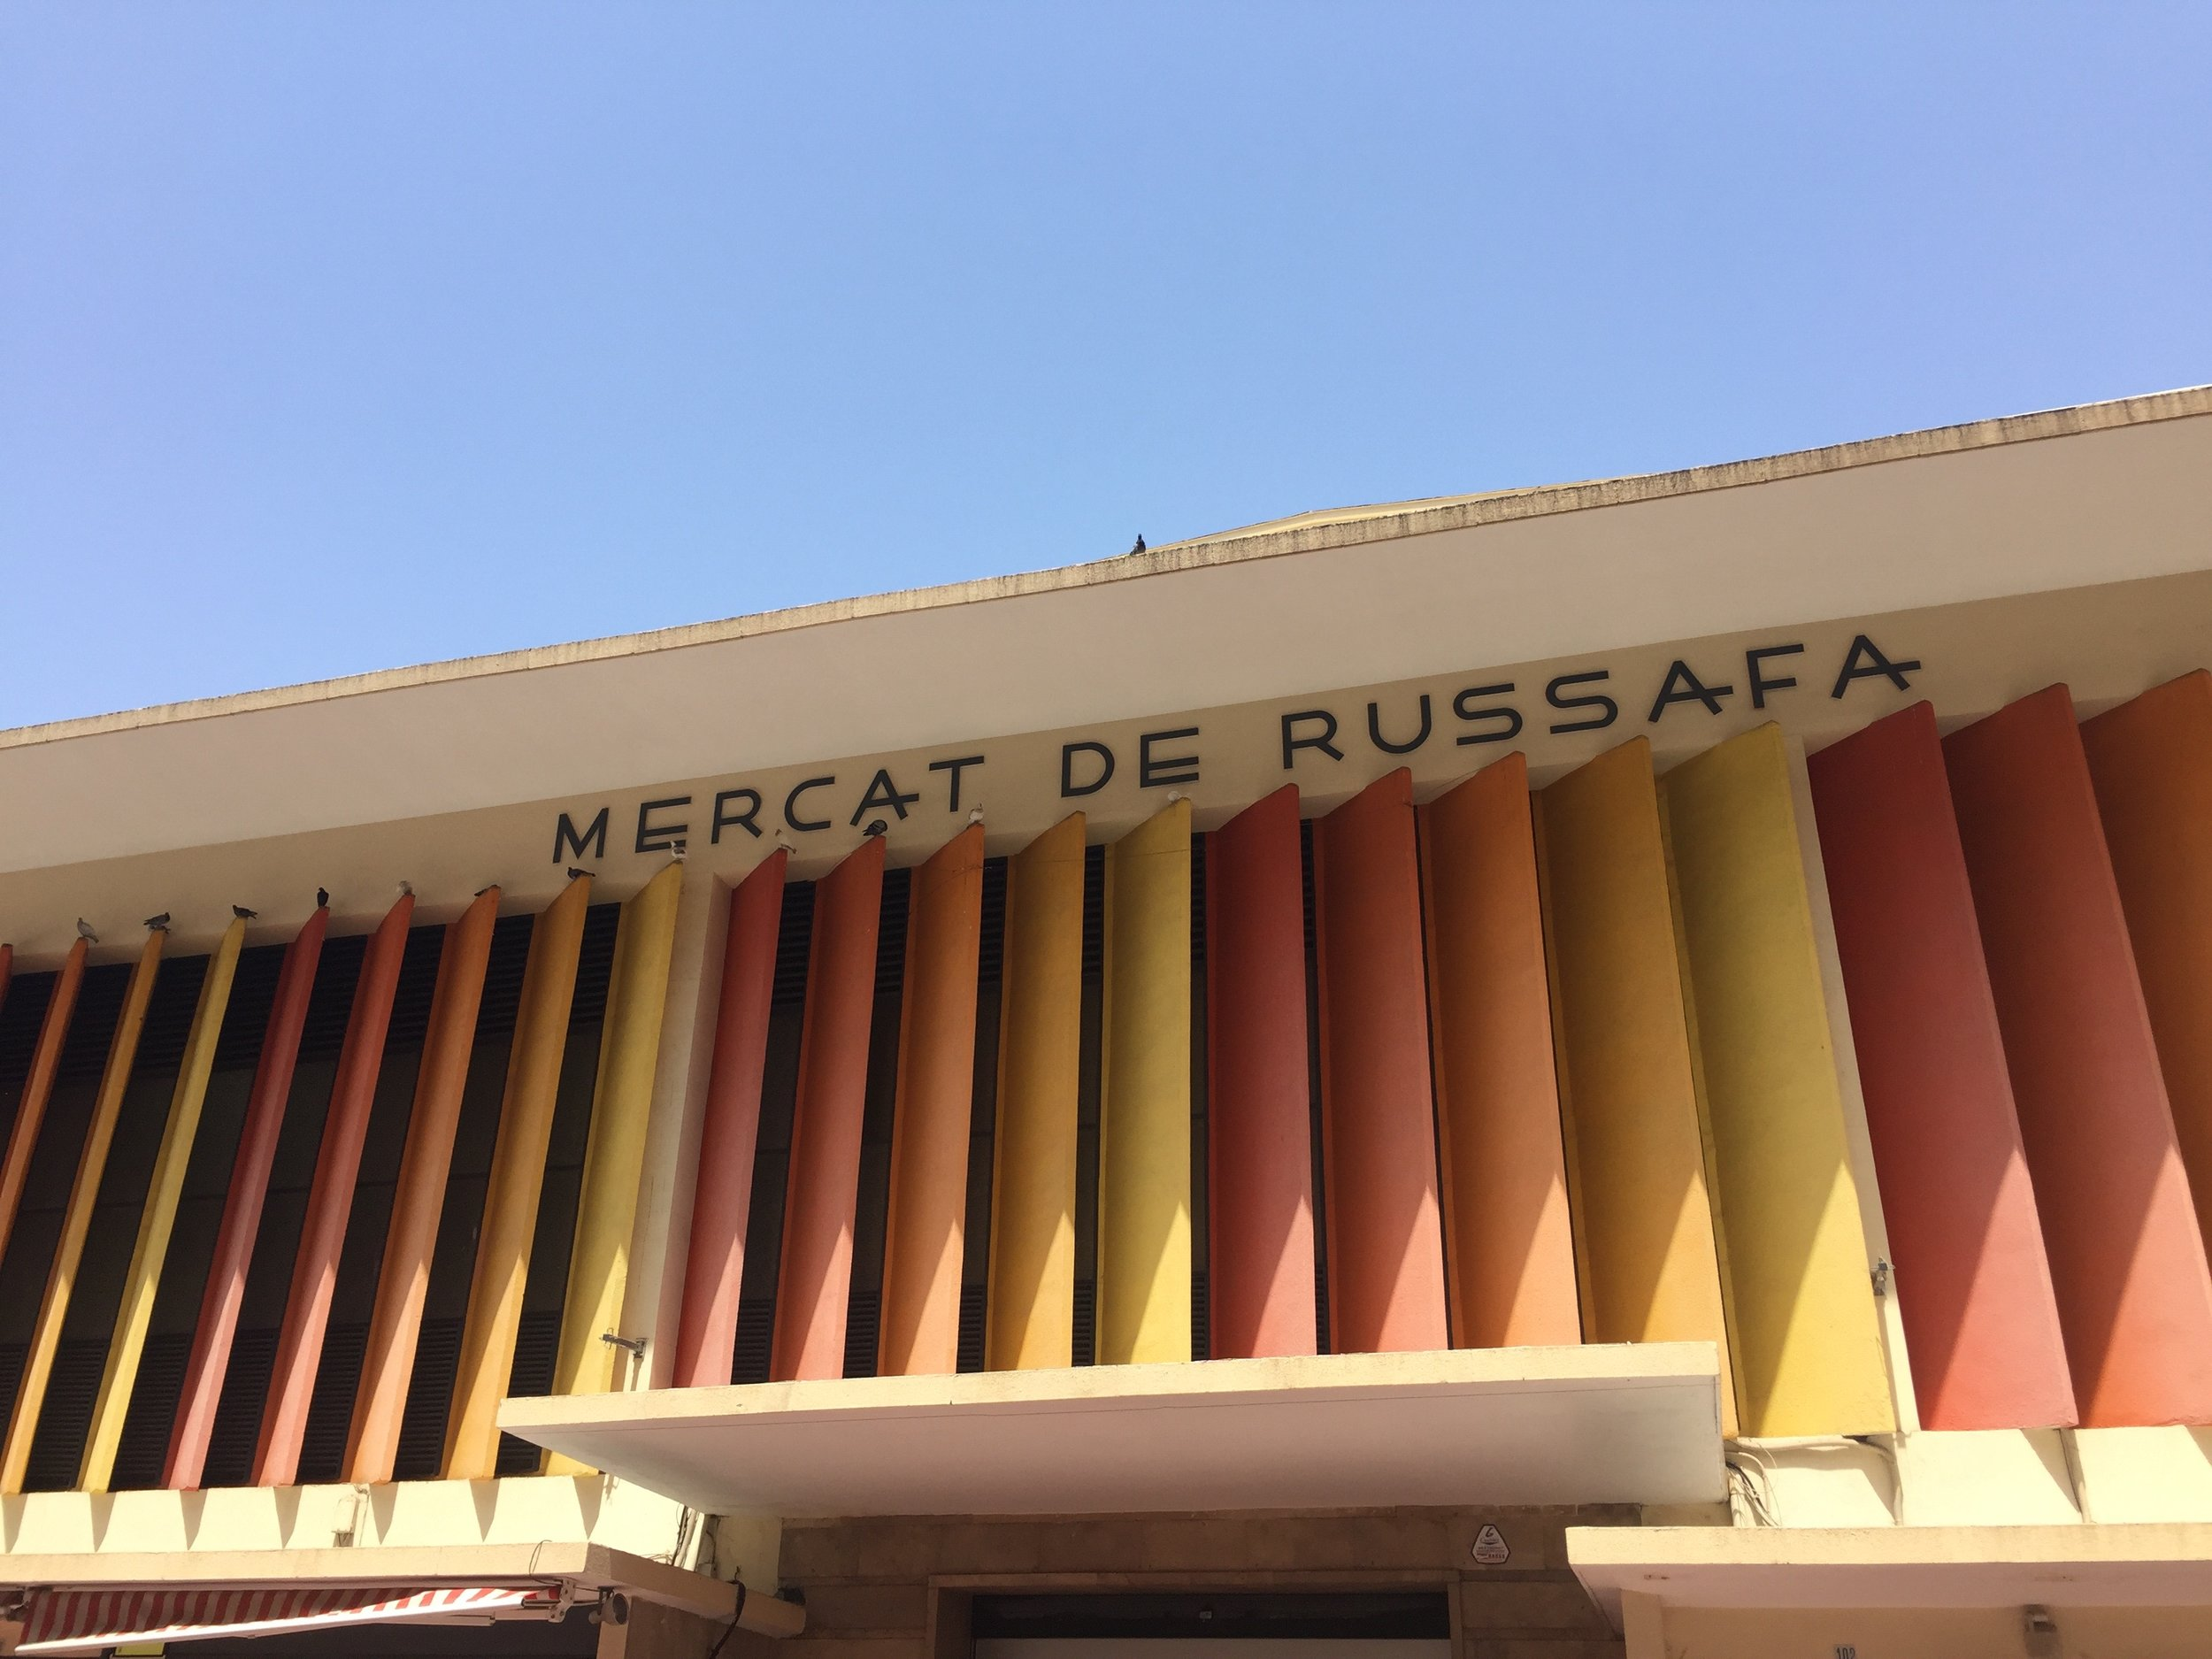 Mercat de Russafa - one of the main markets - we bought our supplies here before going to cook!